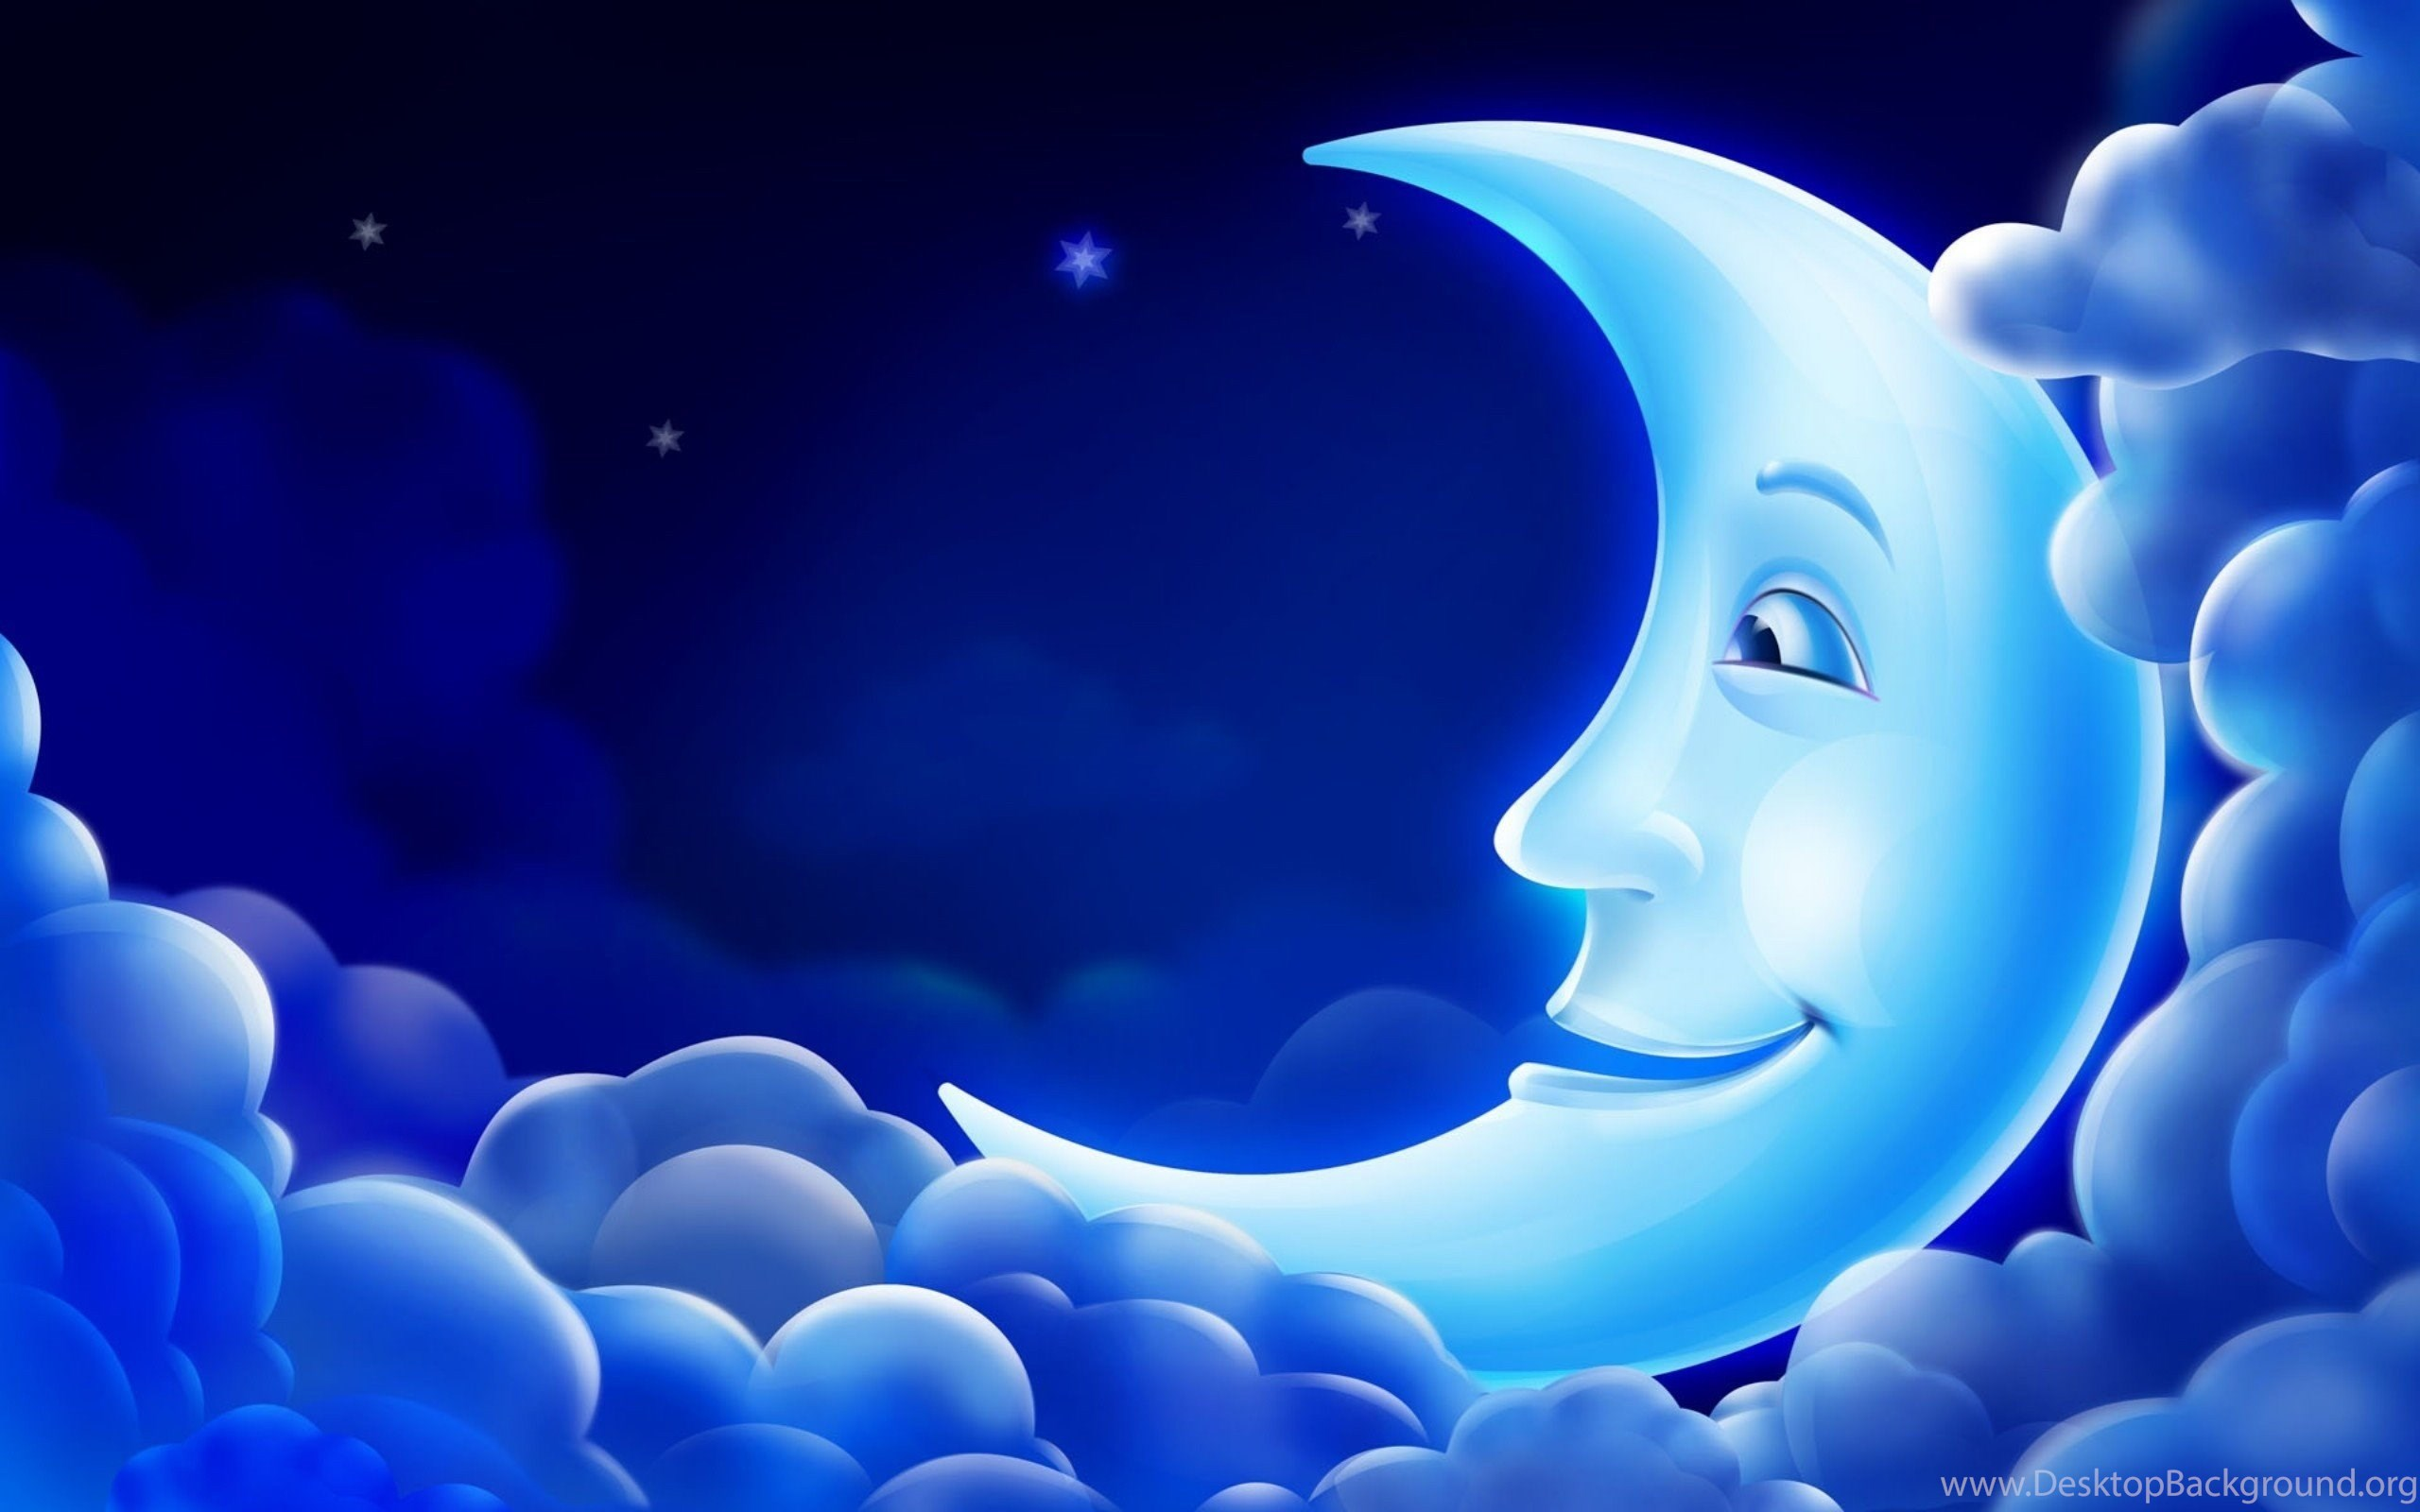 blue moon good night wallpapers hd download for desktop desktop